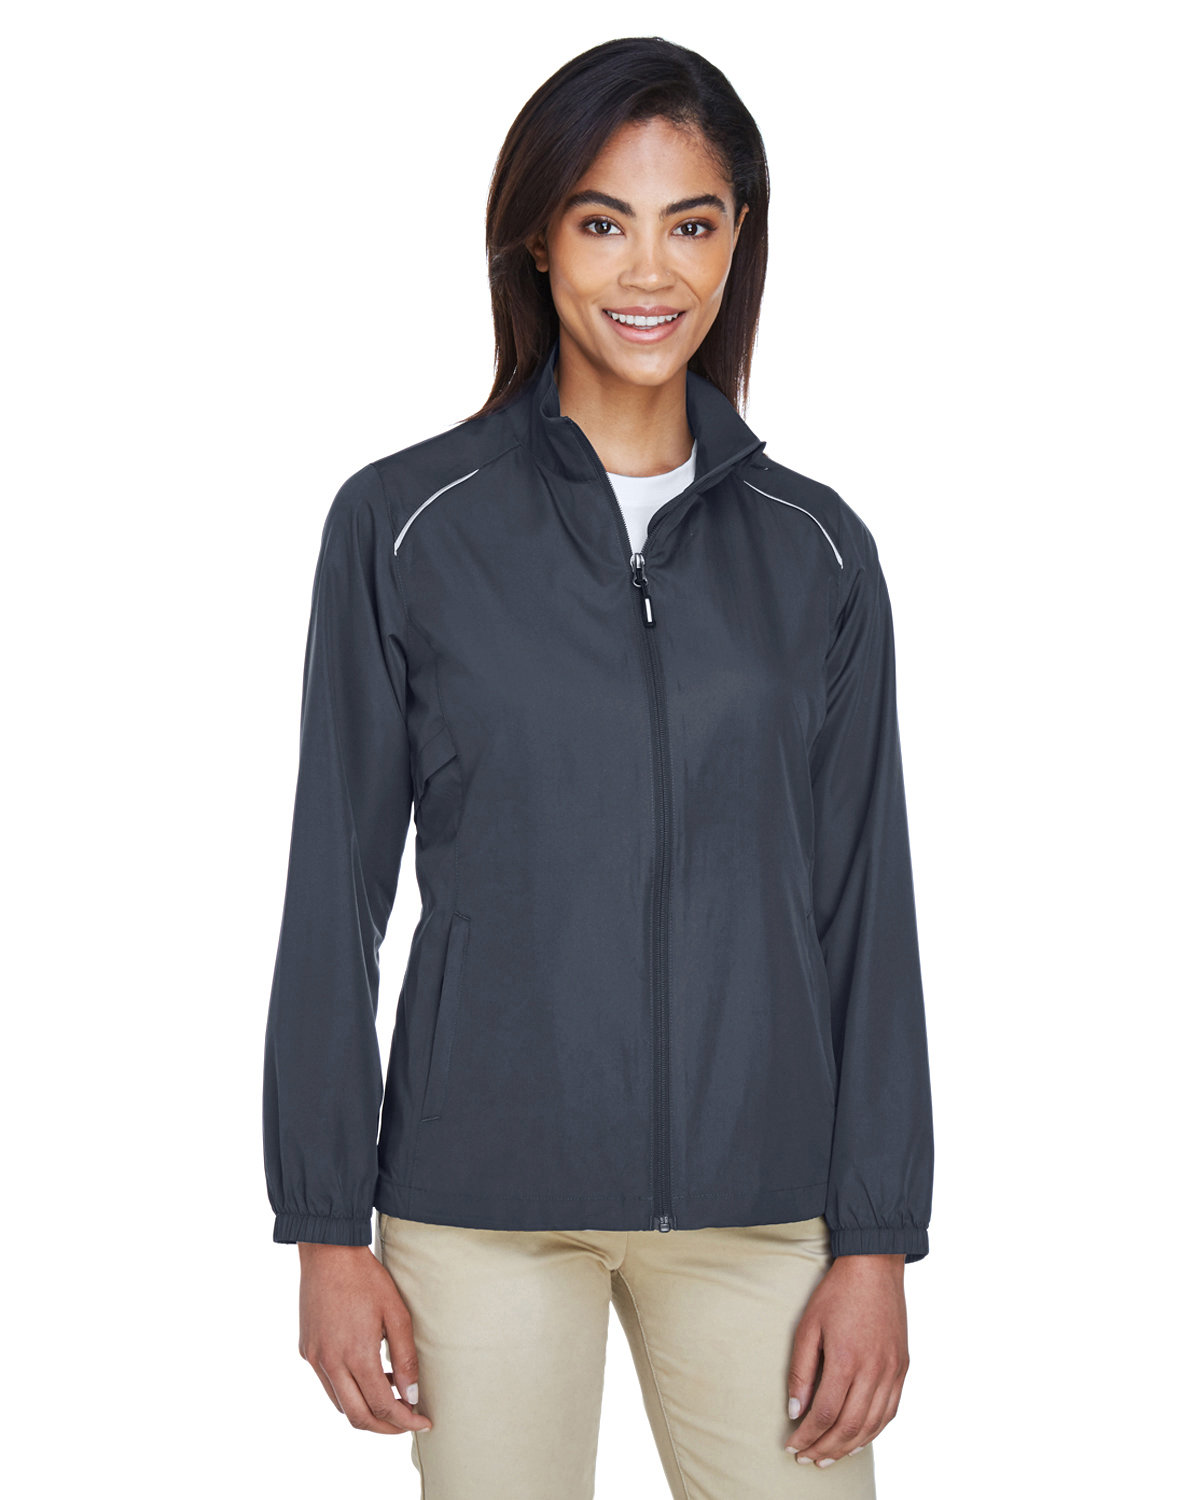 Core 365 Ladies' Motivate Unlined Lightweight Jacket CARBON